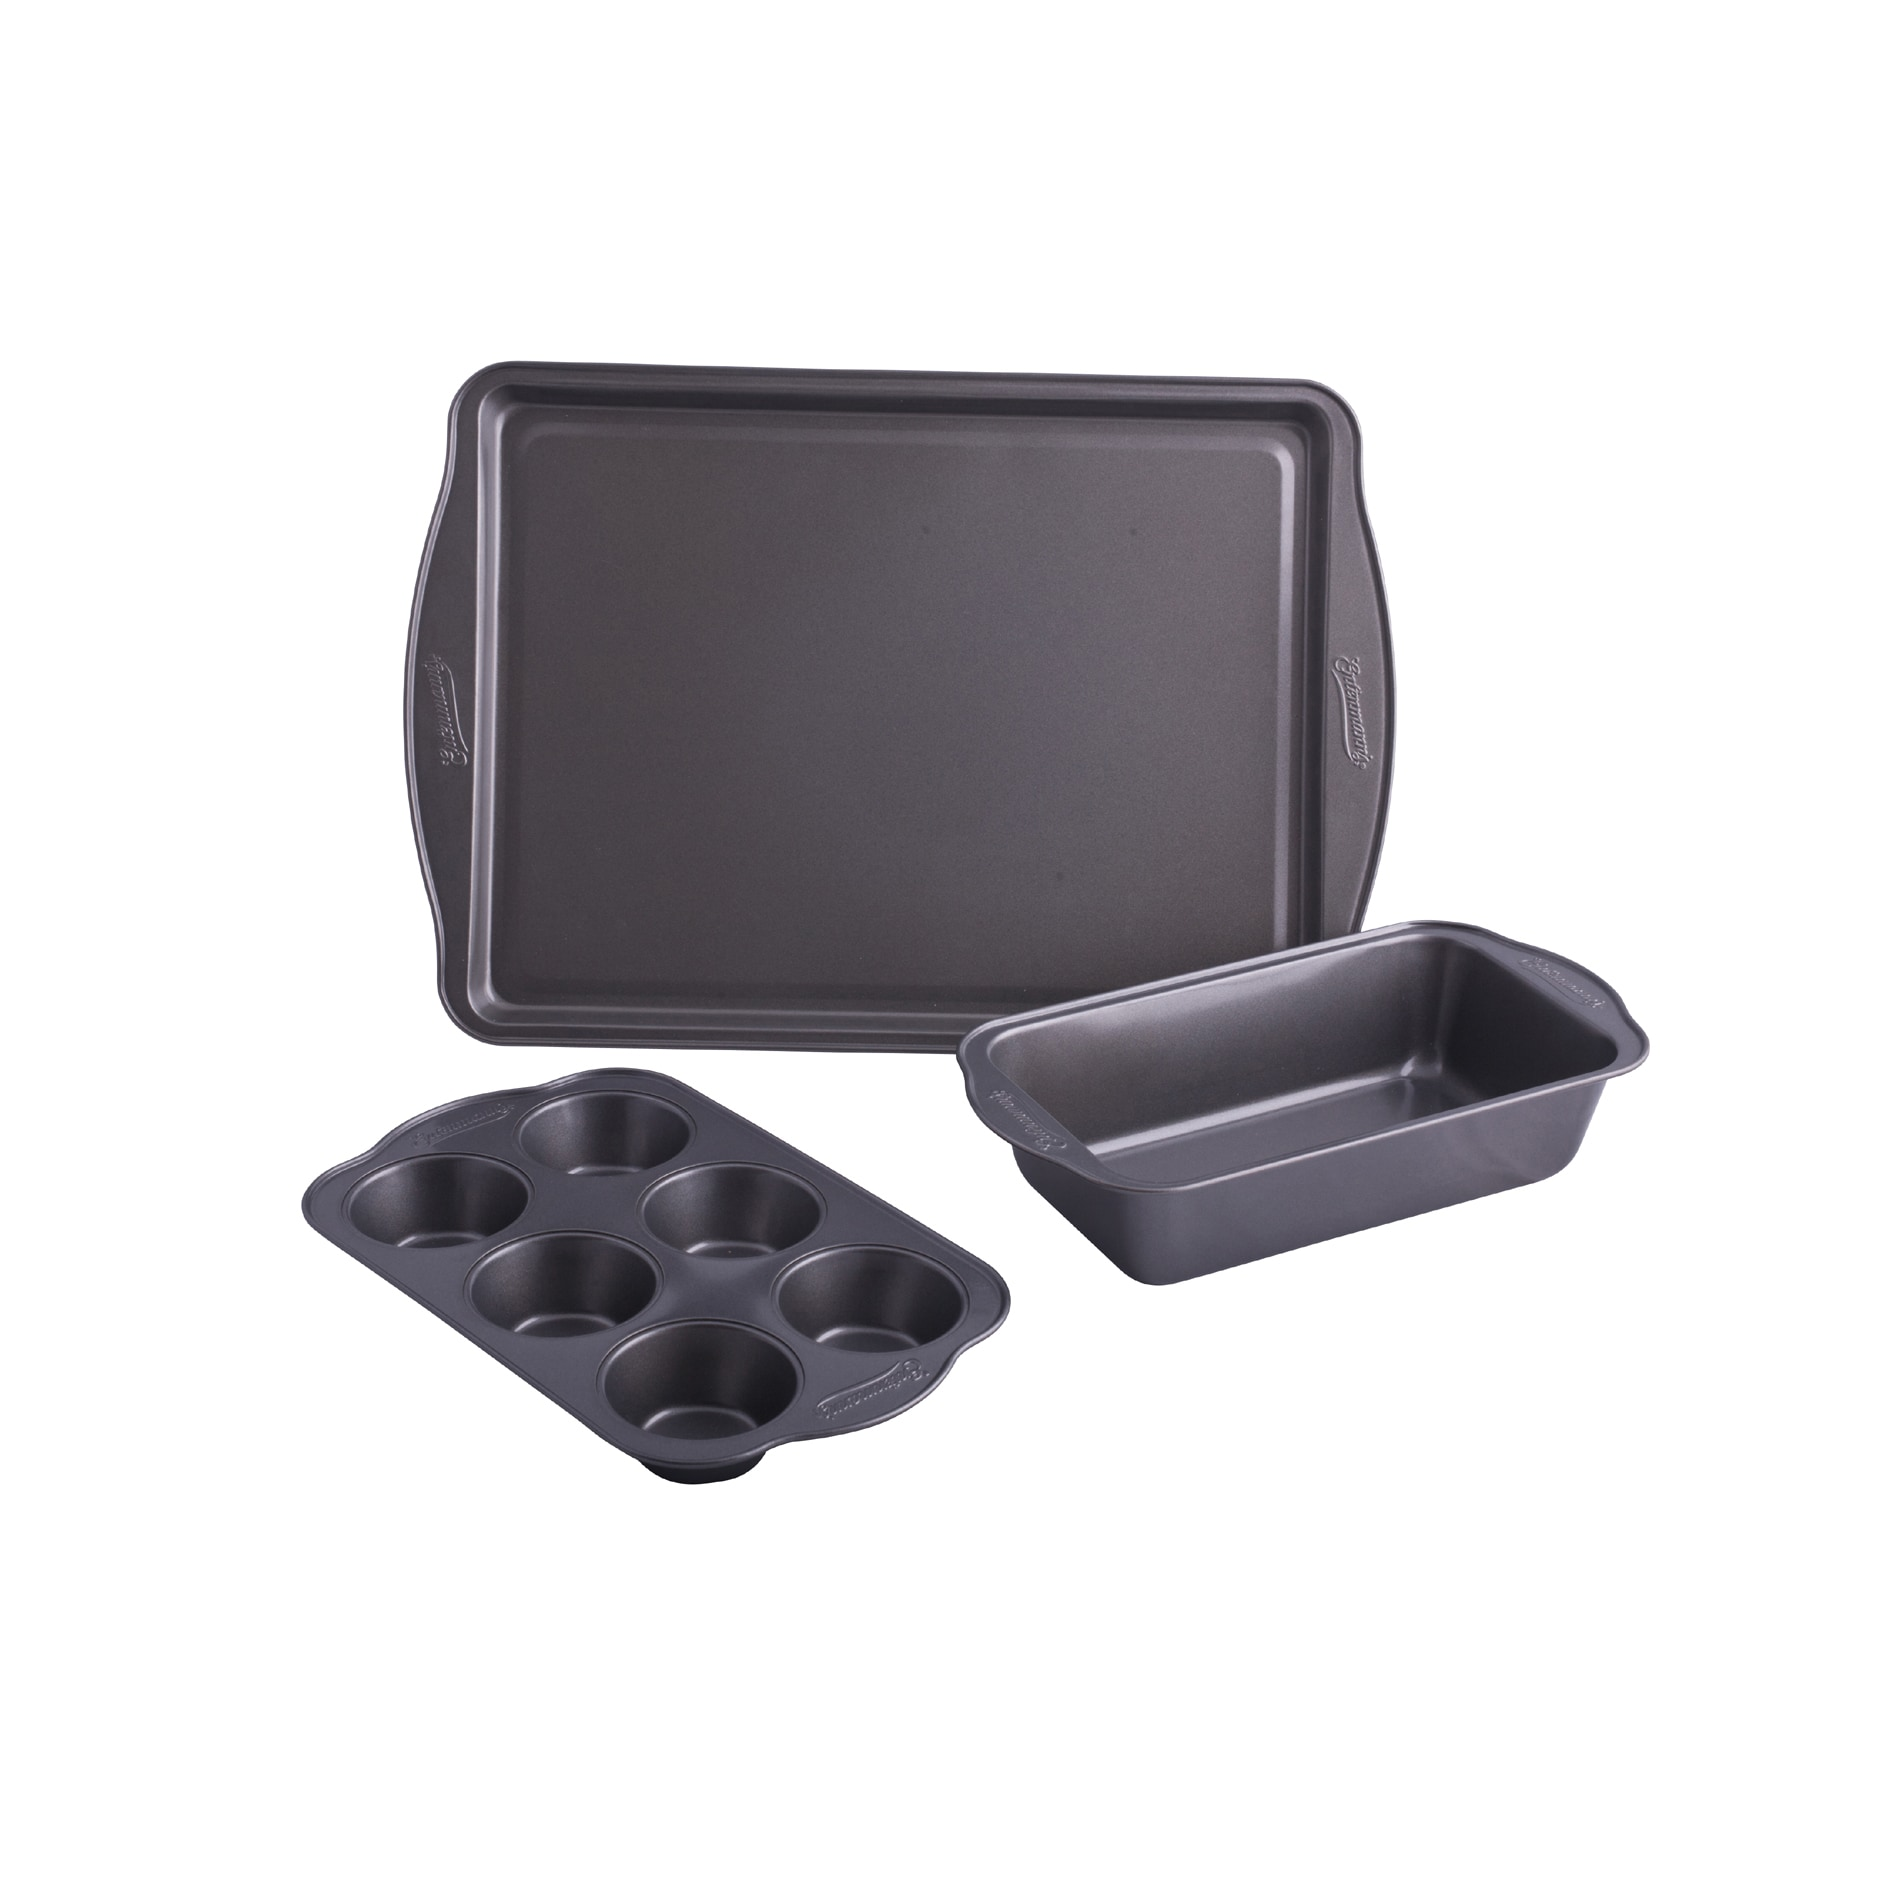 Entenmann's Classic 3-piece Bakeware Set